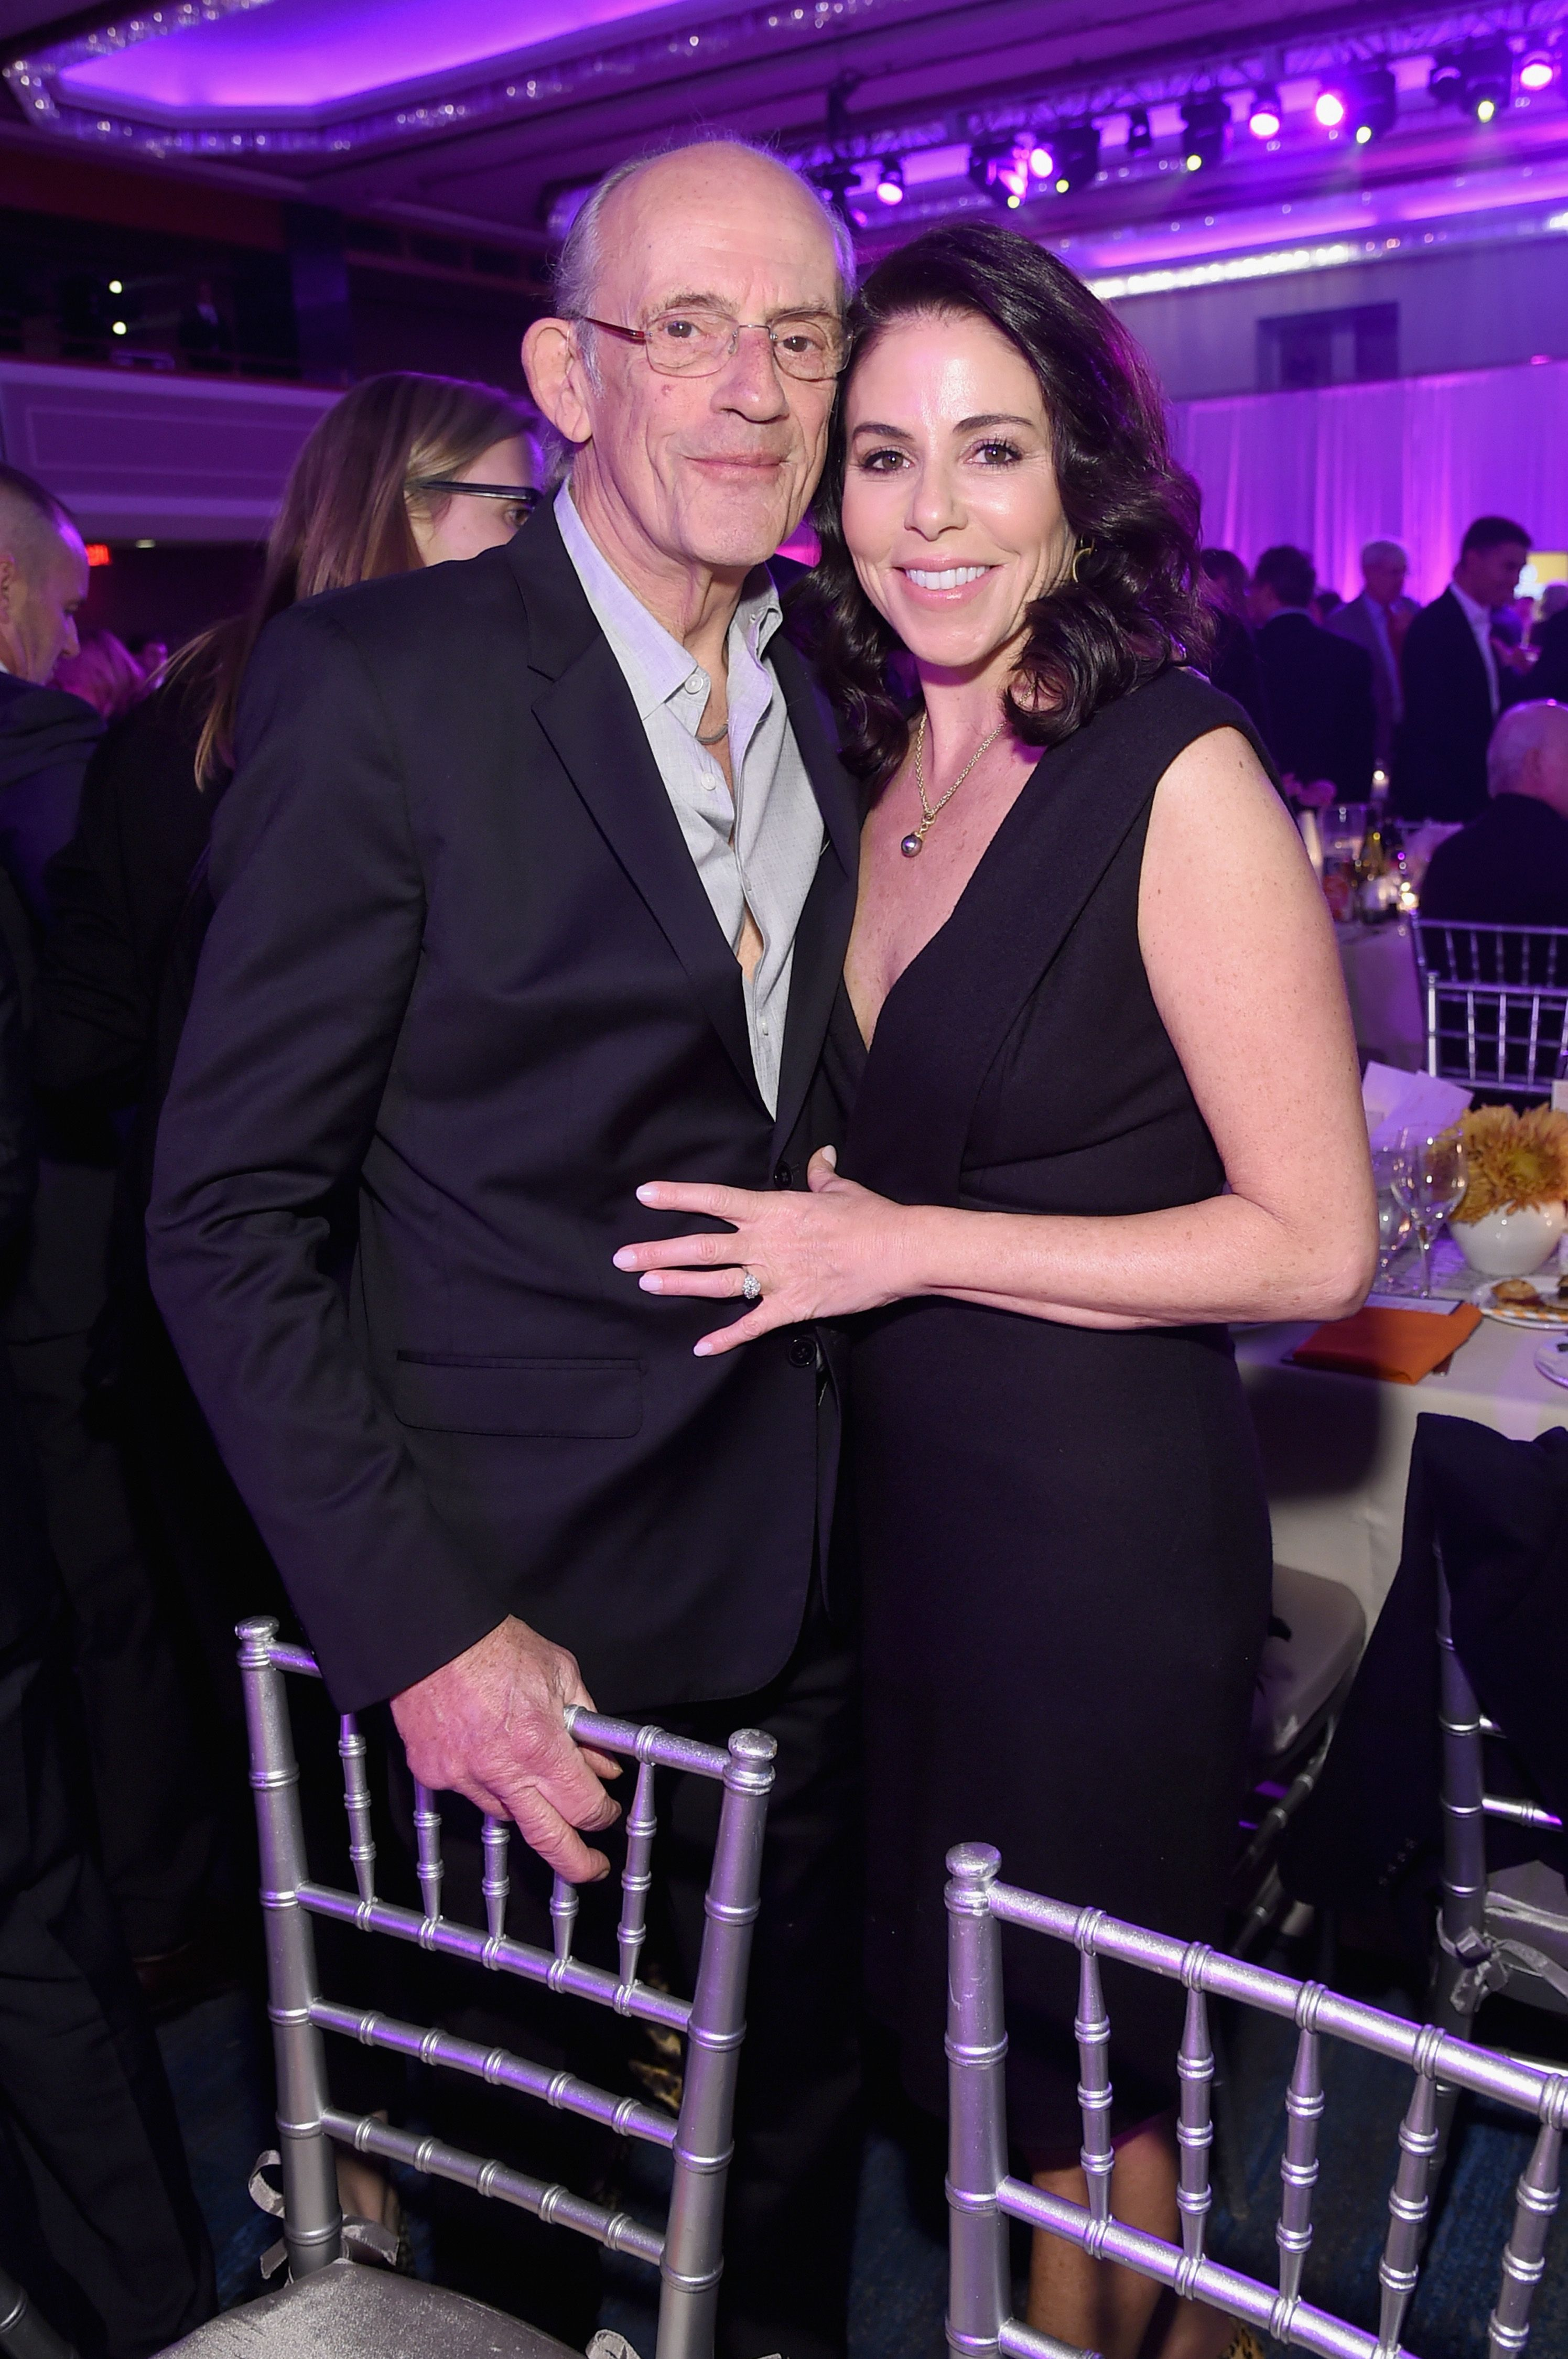 Christopher Lloyd and wife Lisa Lloyd at a benefit for The Michael J. Fox Foundation in 2018 in New York | Source: Getty Images